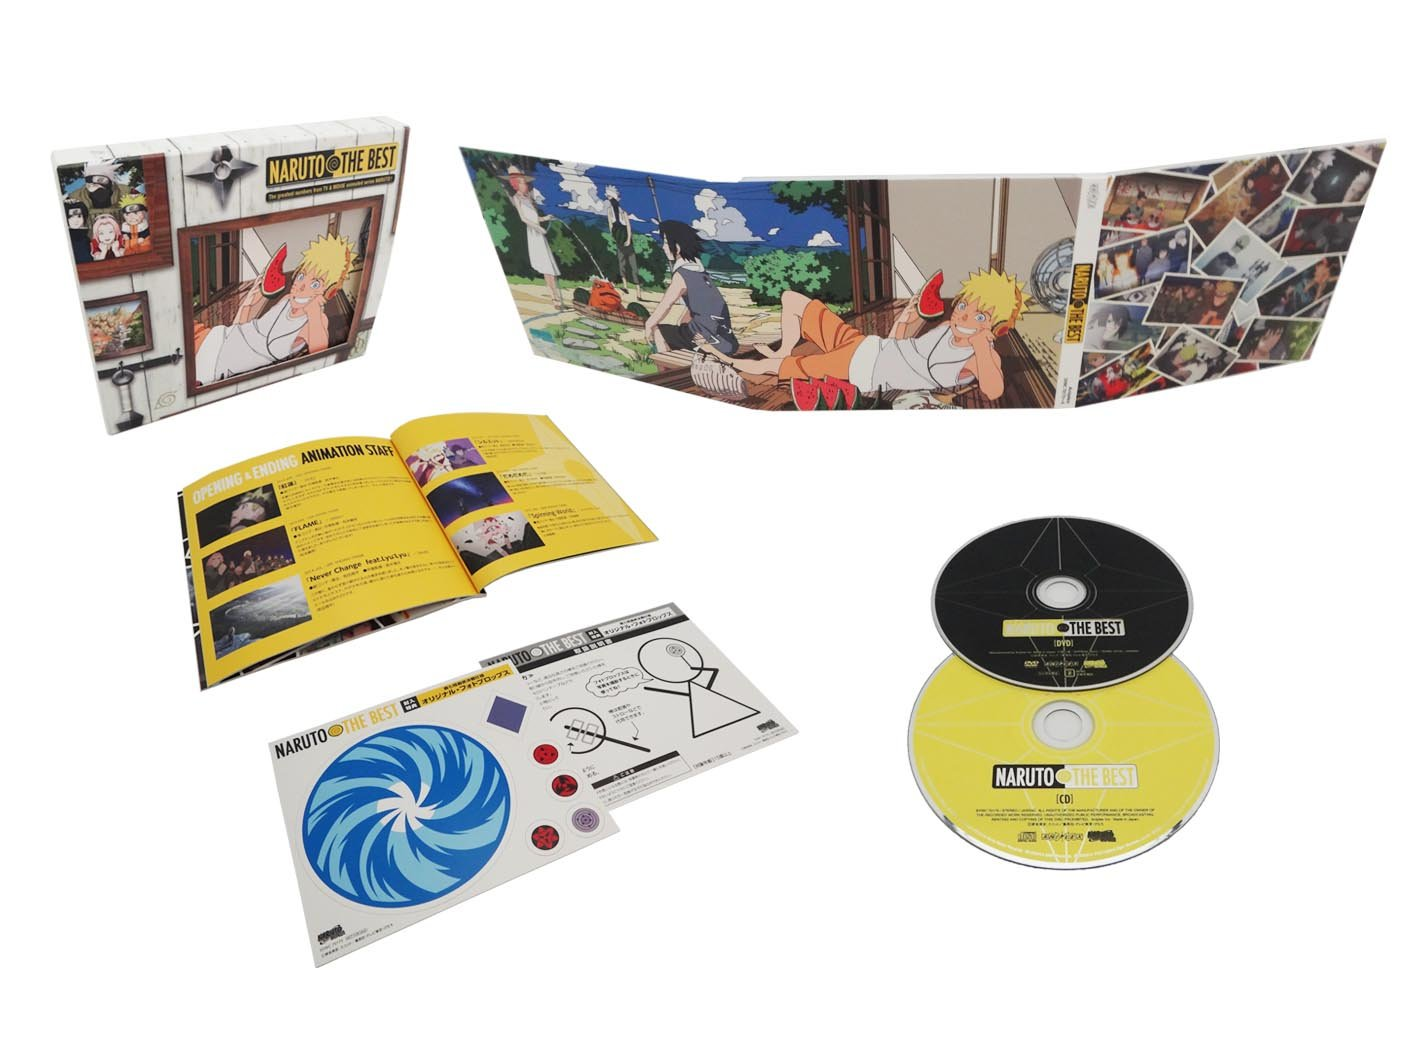 NARUTO THE BEST [CD+DVD]